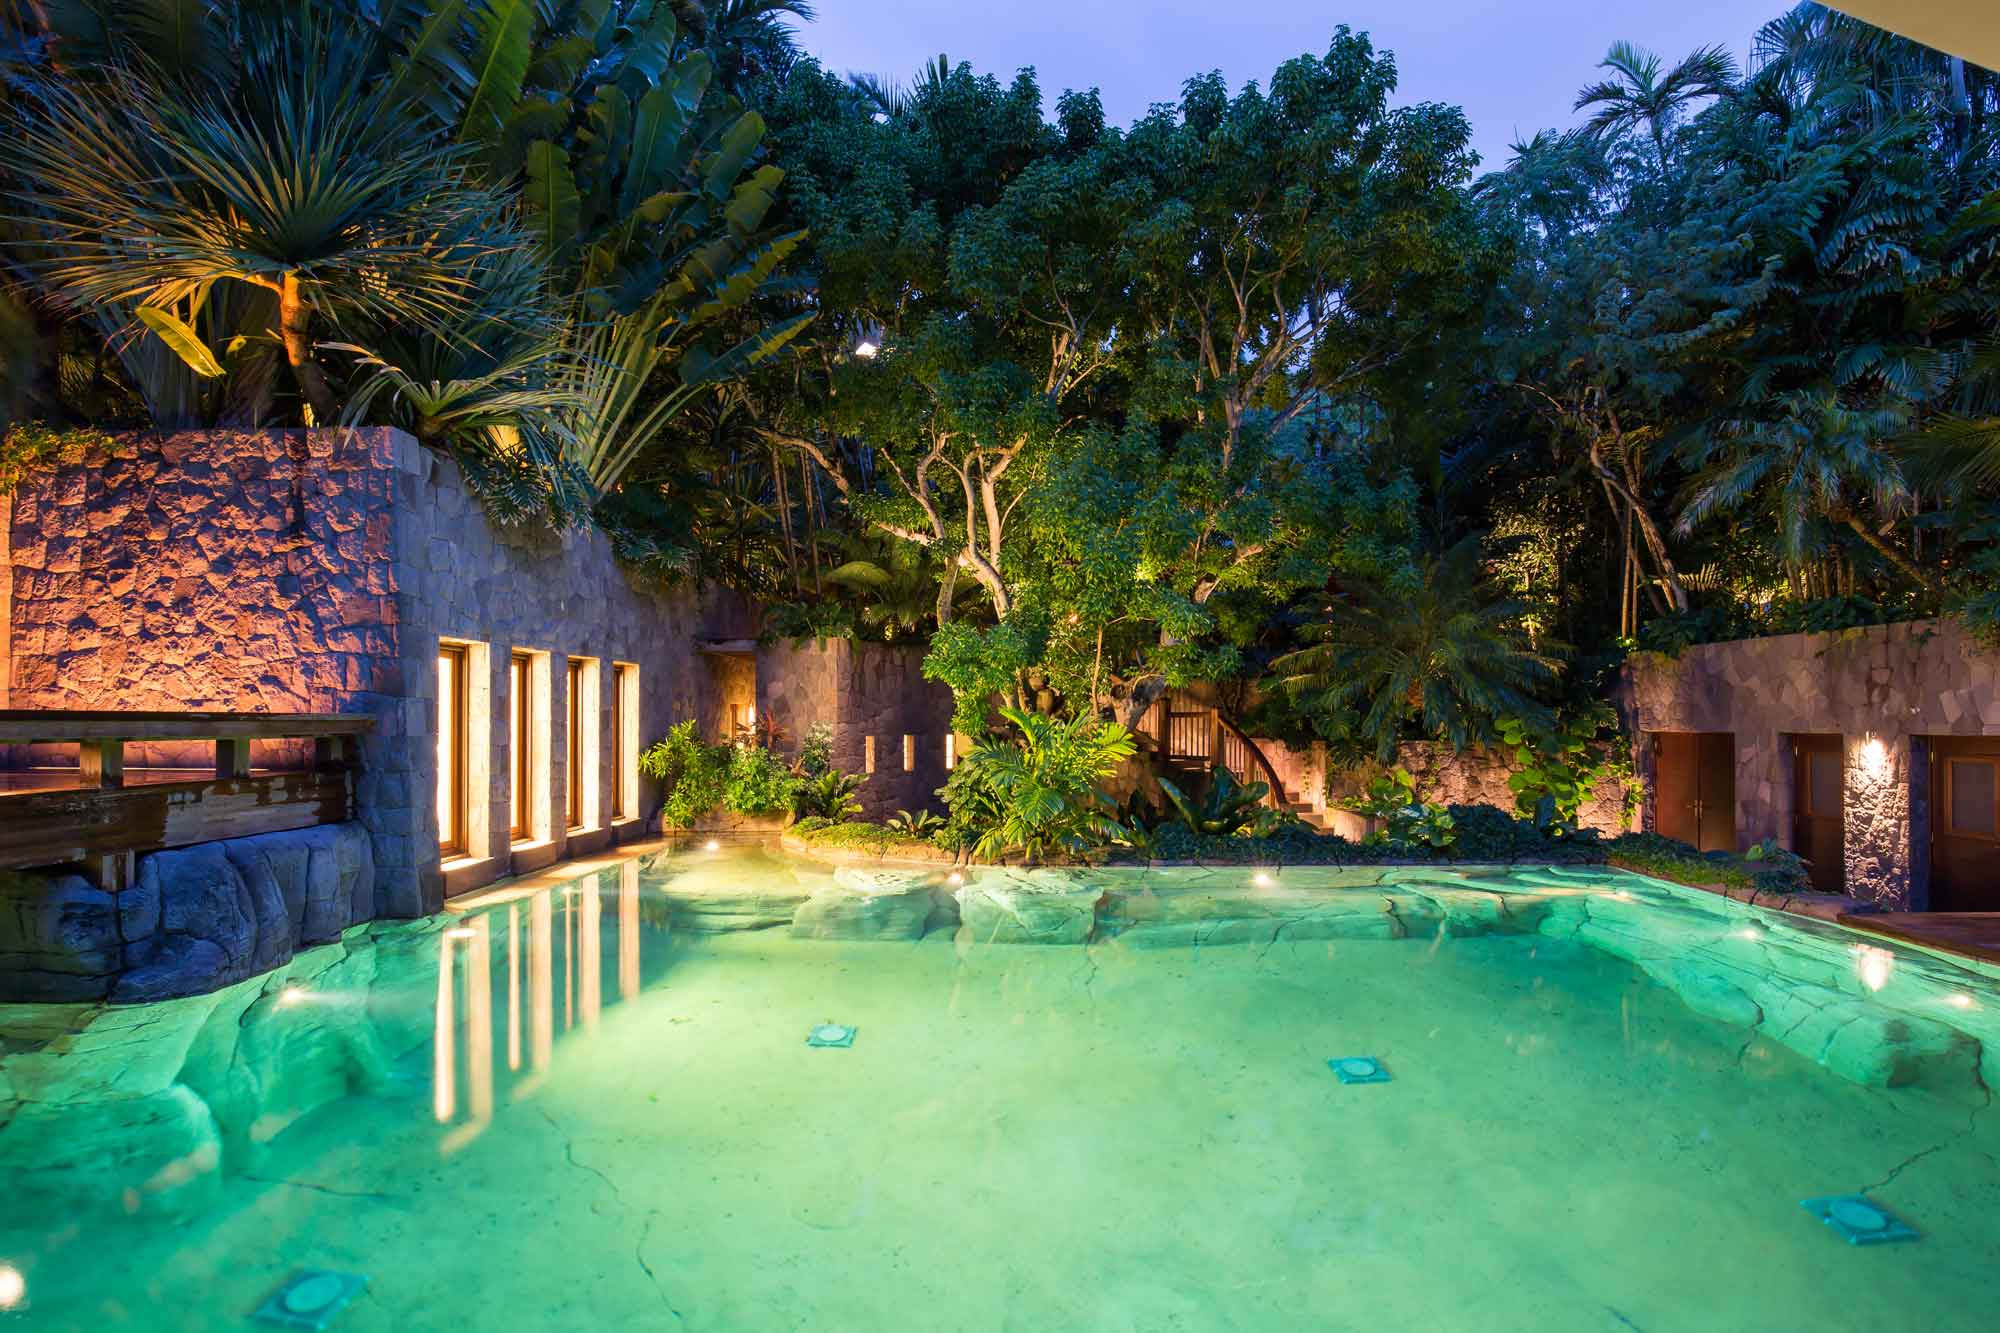 Girasol's guest house (known as the Caribbean Villa) comprises three large bedrooms and a lounge area leading out to a swimming pool surrounded by tropical gardens.